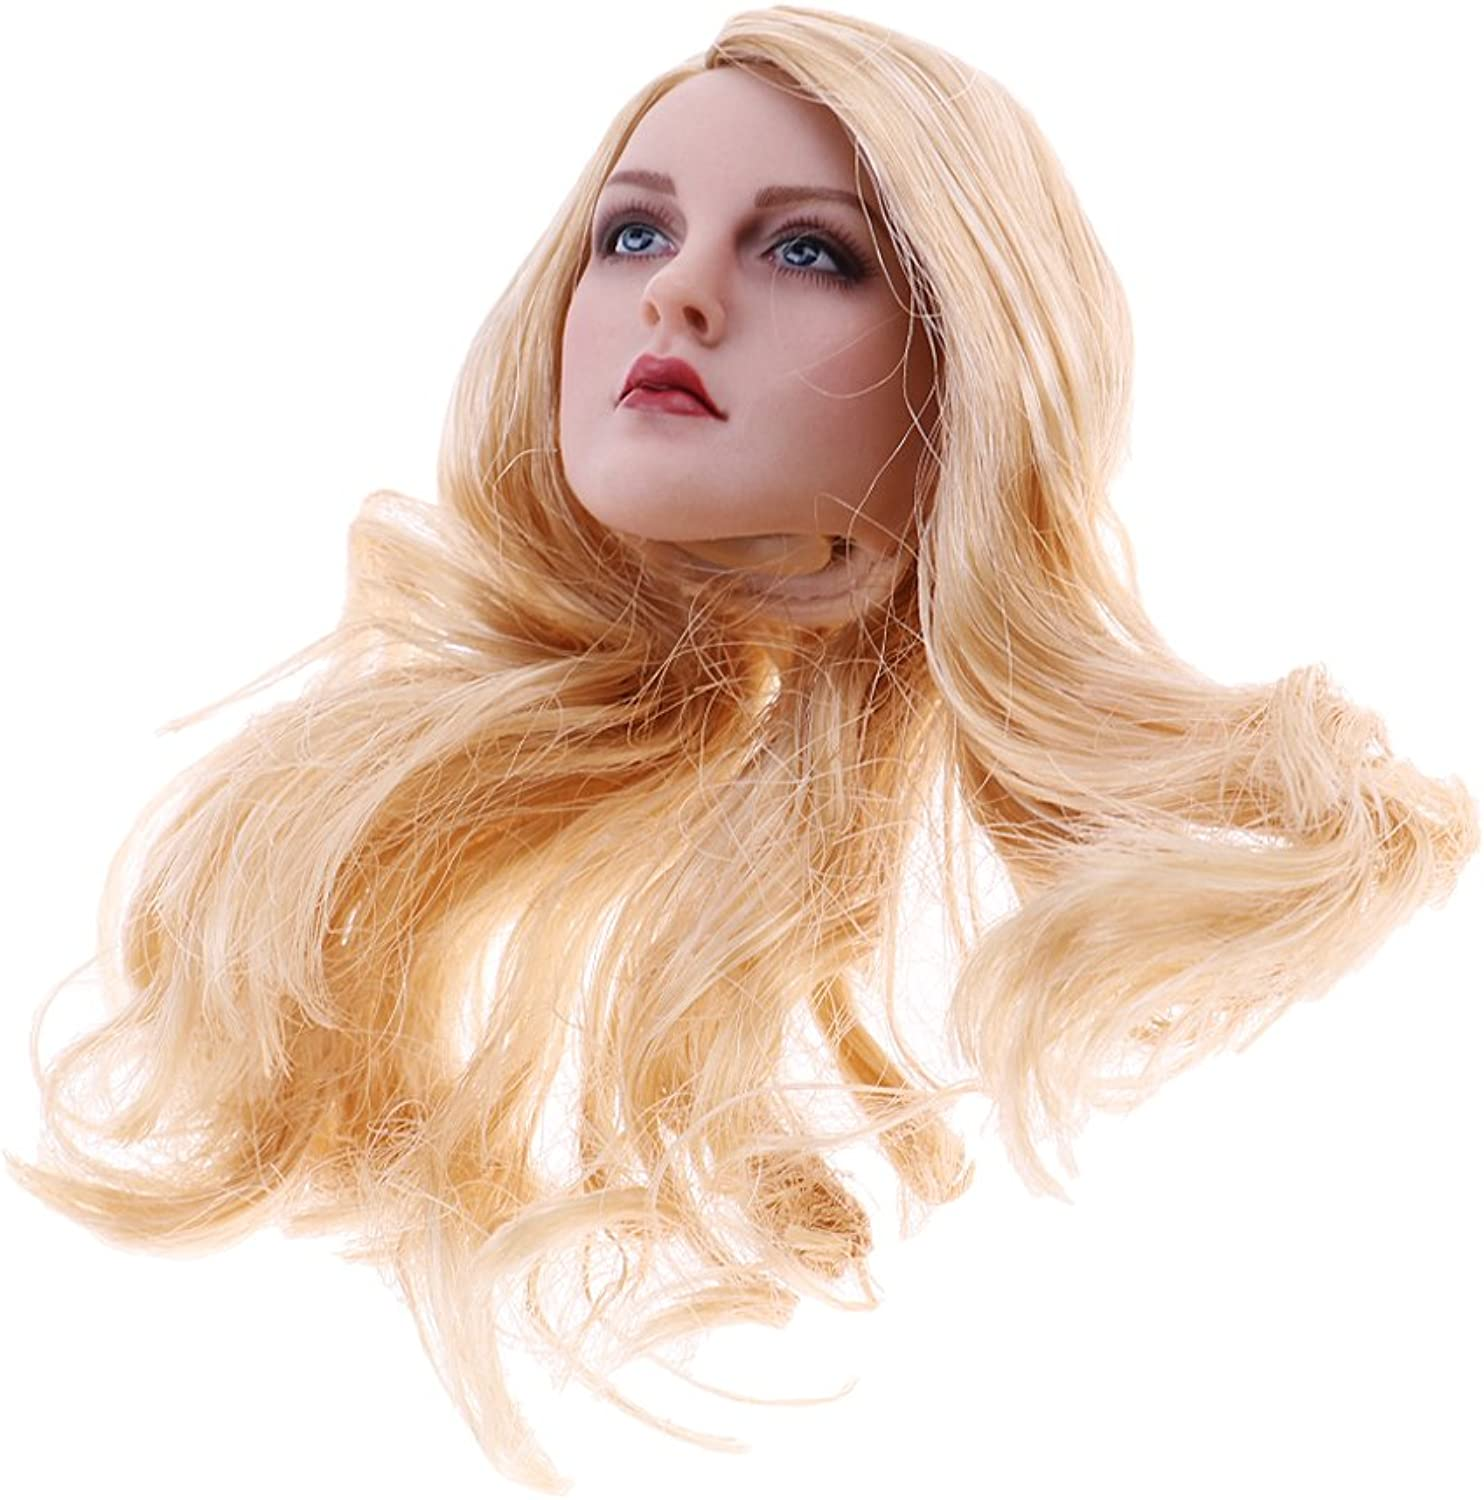 Homyl 1 6 Female Body Head Sculpture Long golden Hair for 12'' CY CG Figure Models